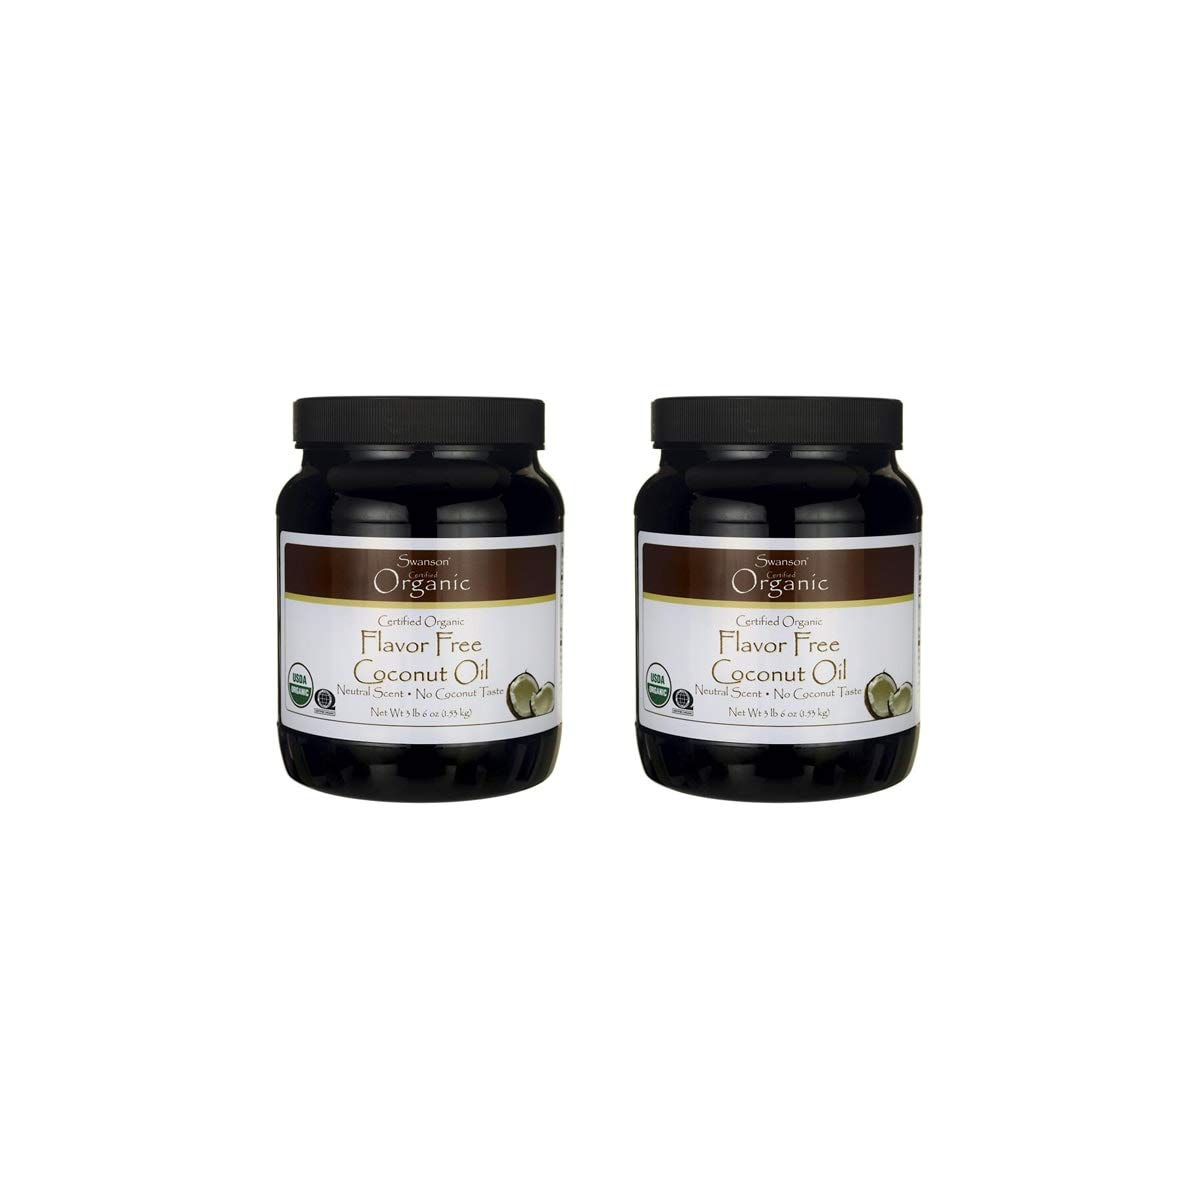 Swanson 100% Certified Organic Flavor Free Coconut Oil Cooking Baking Frying Beauty EFAs MCTs 3 lbs 6 Ounces (1.53 kg) Solid Oil (2 Pack)